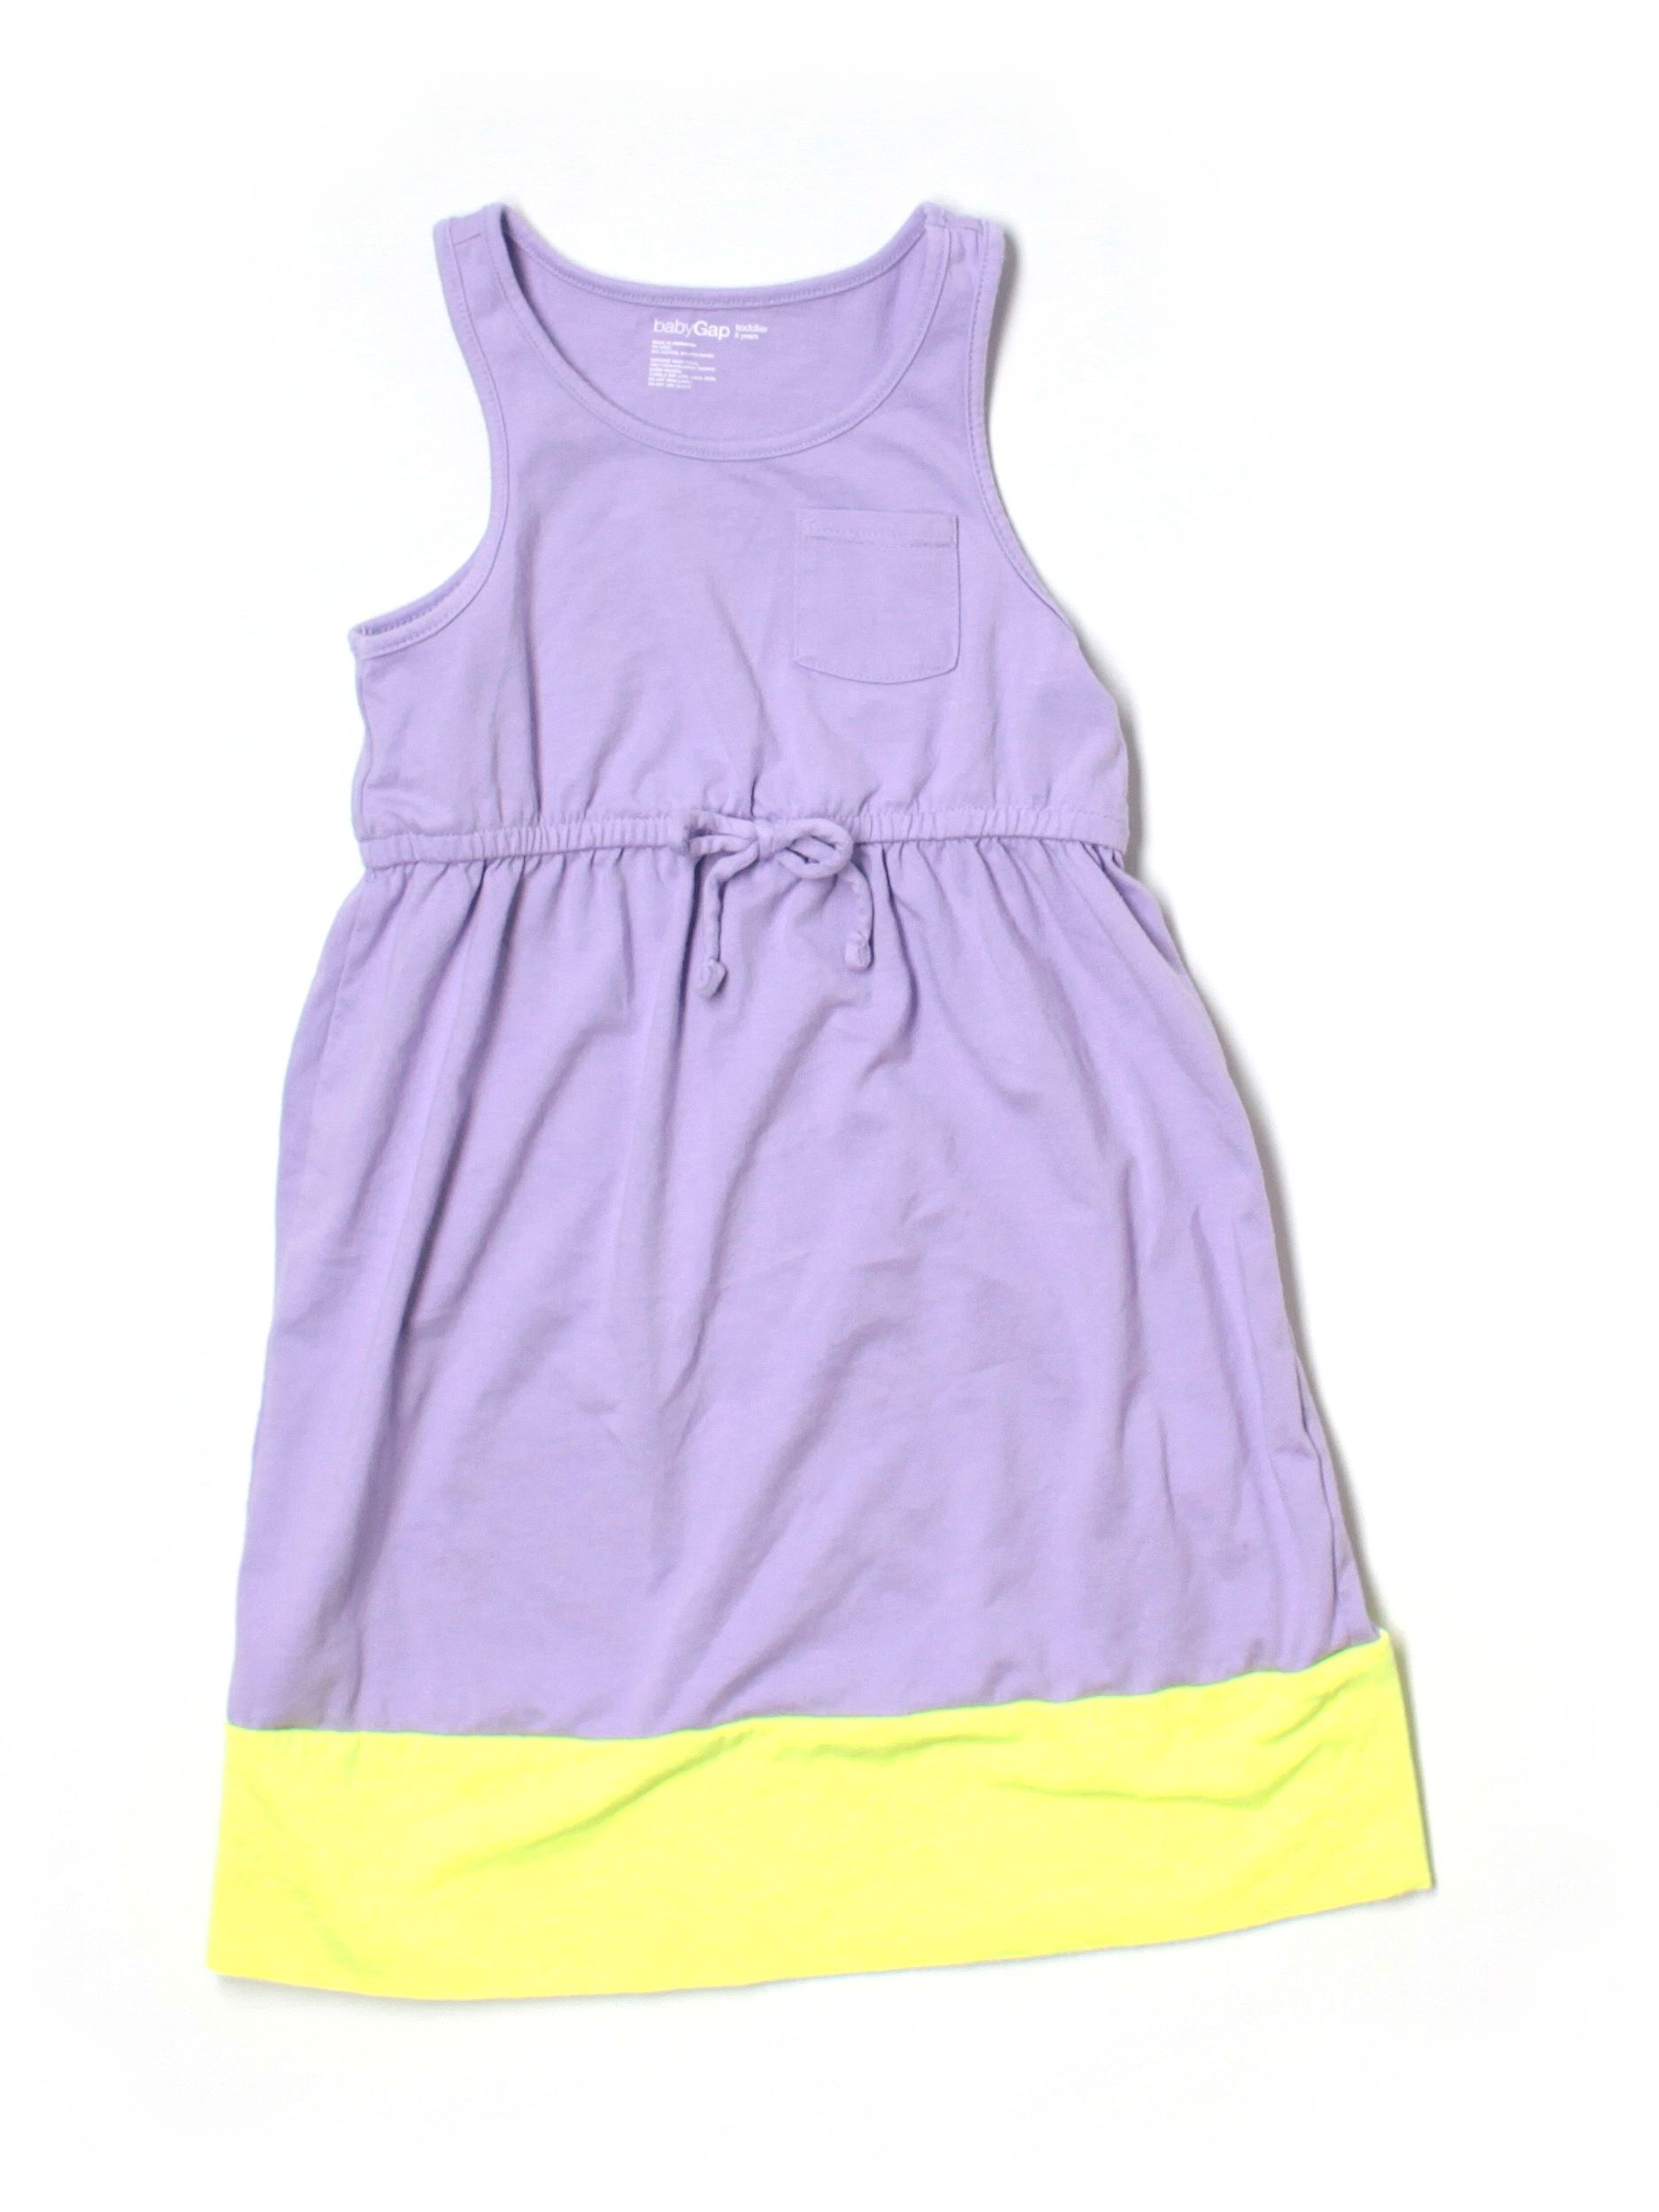 Baby Gap Dress for Girl ooh so cute I wish they had this in adult